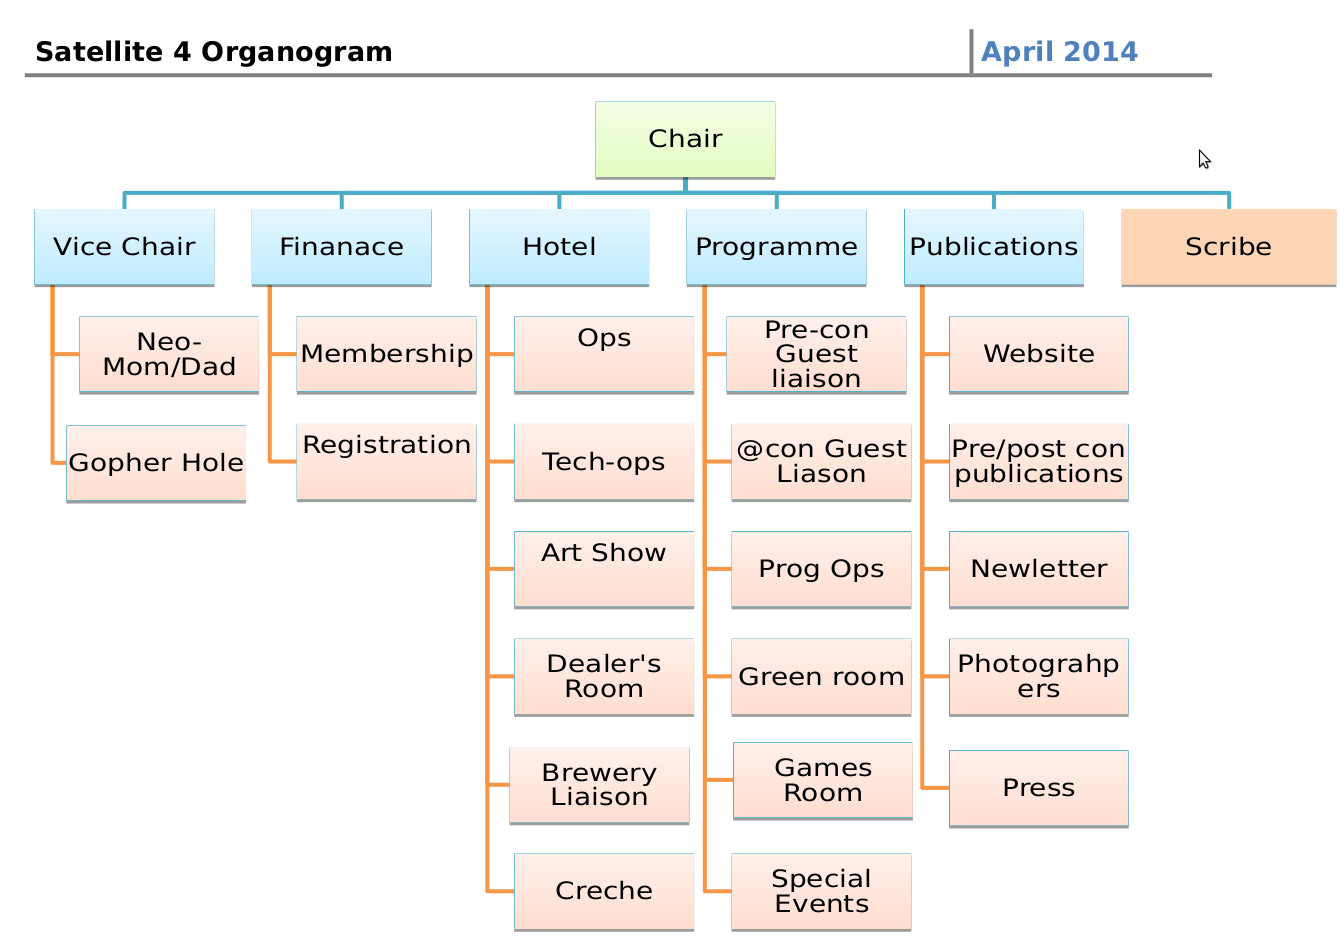 Satellite4 organogram